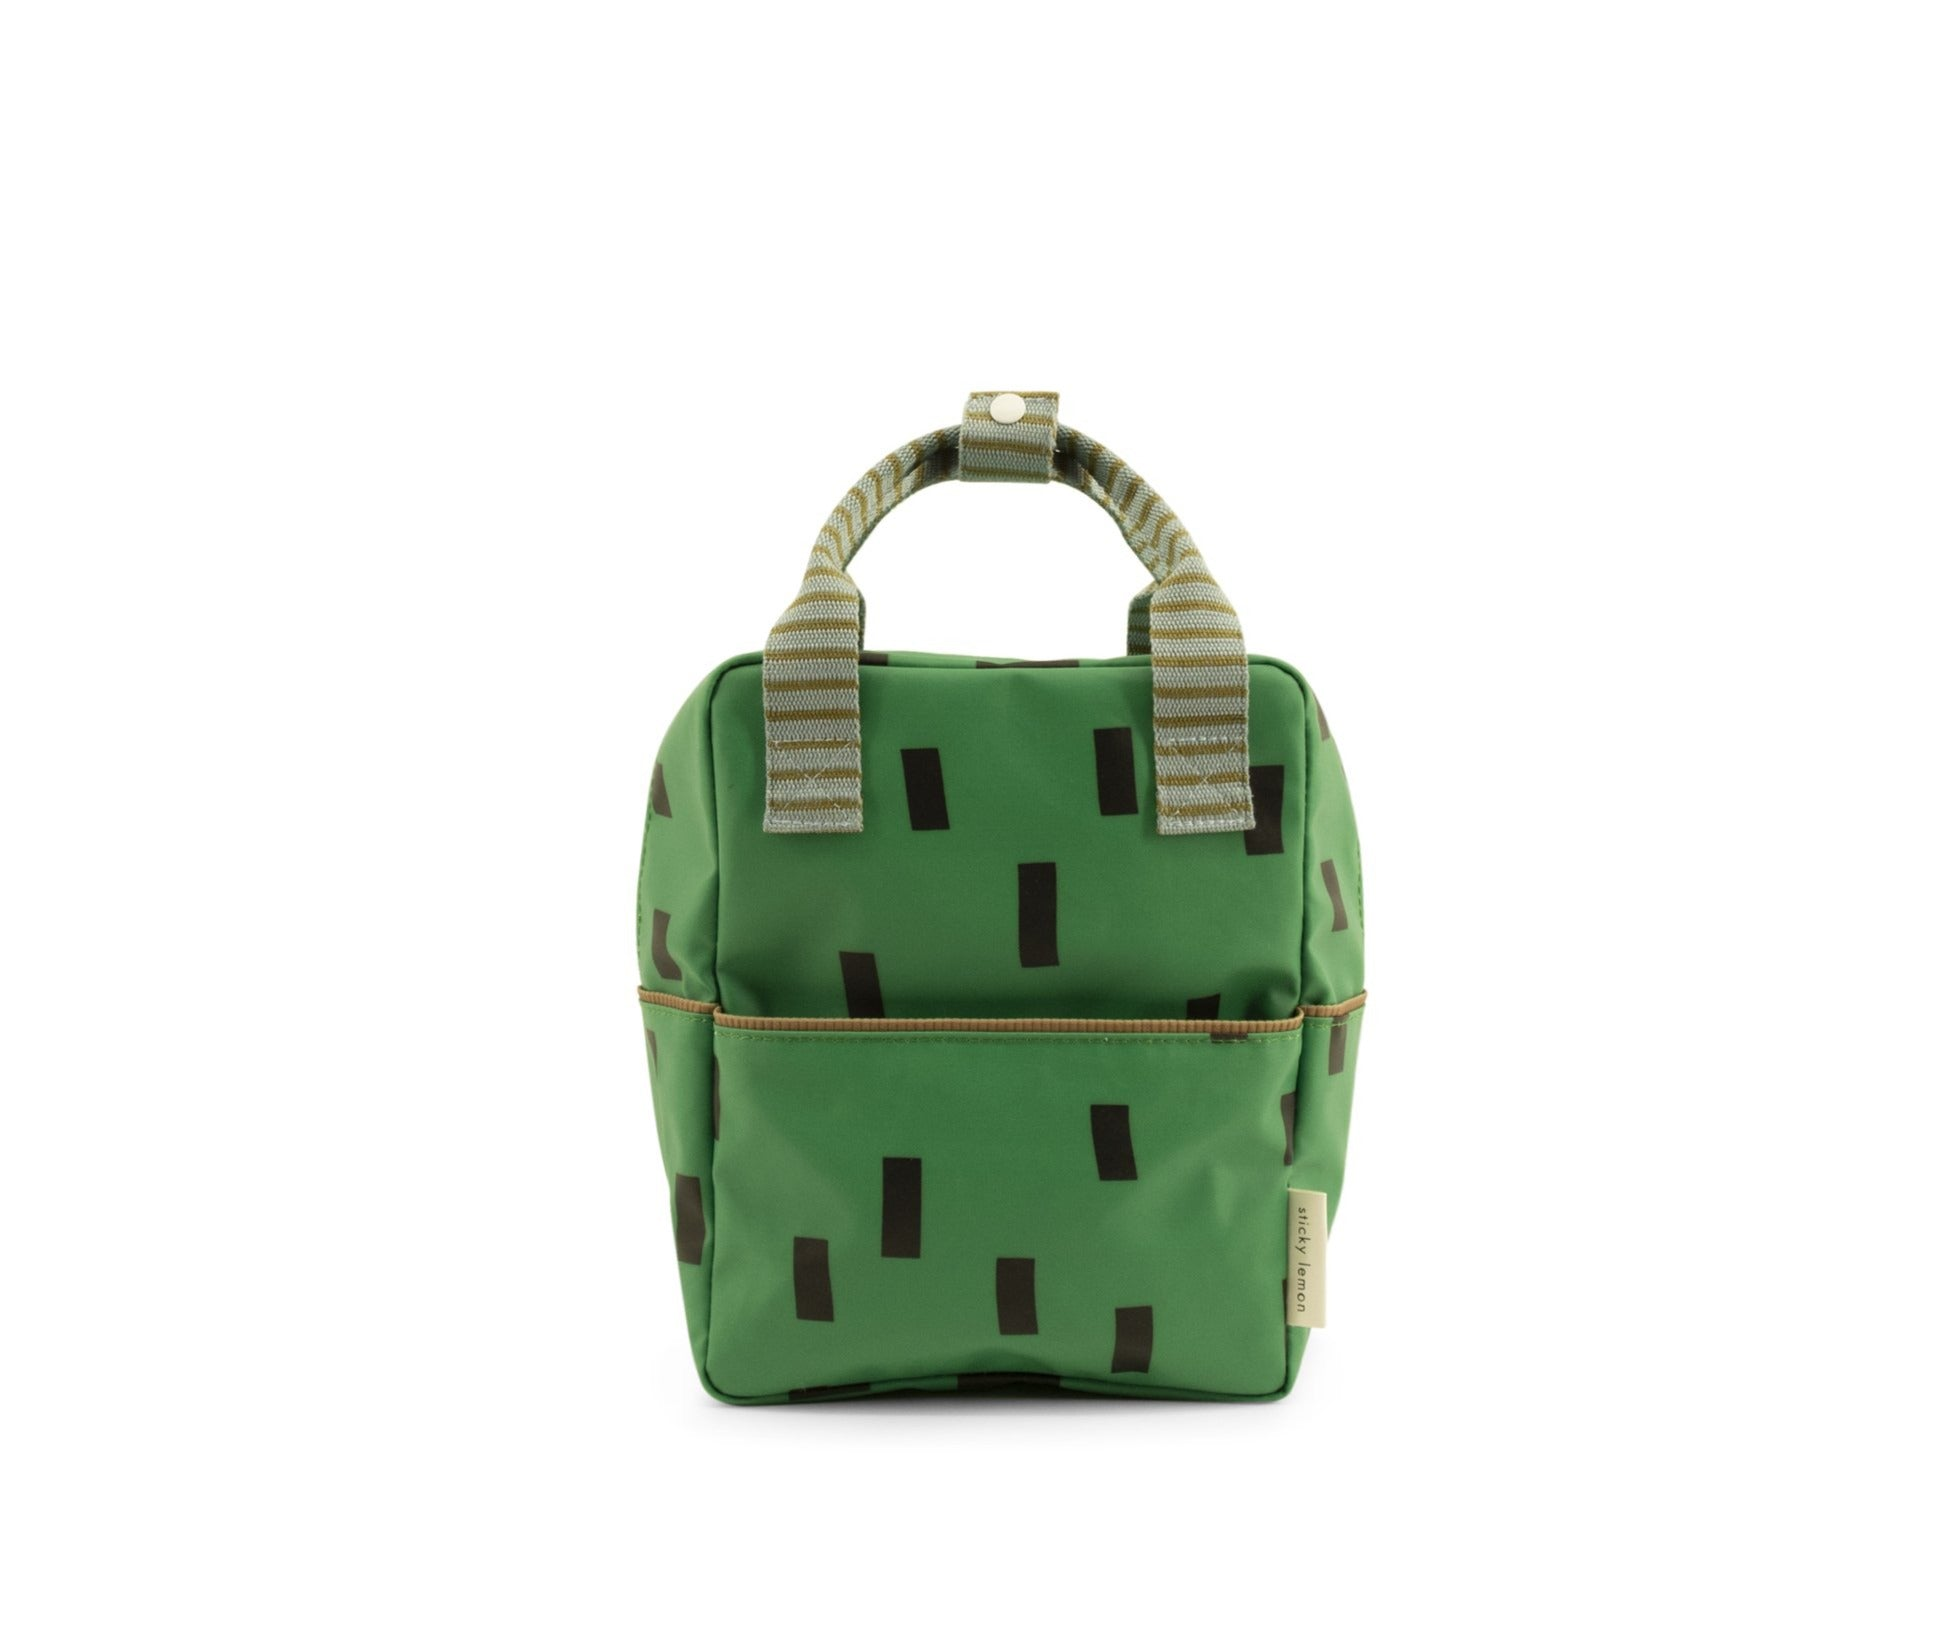 Backpack small | sprinkles special edition apple green + steel blue + brassy green-Sticky Lemon